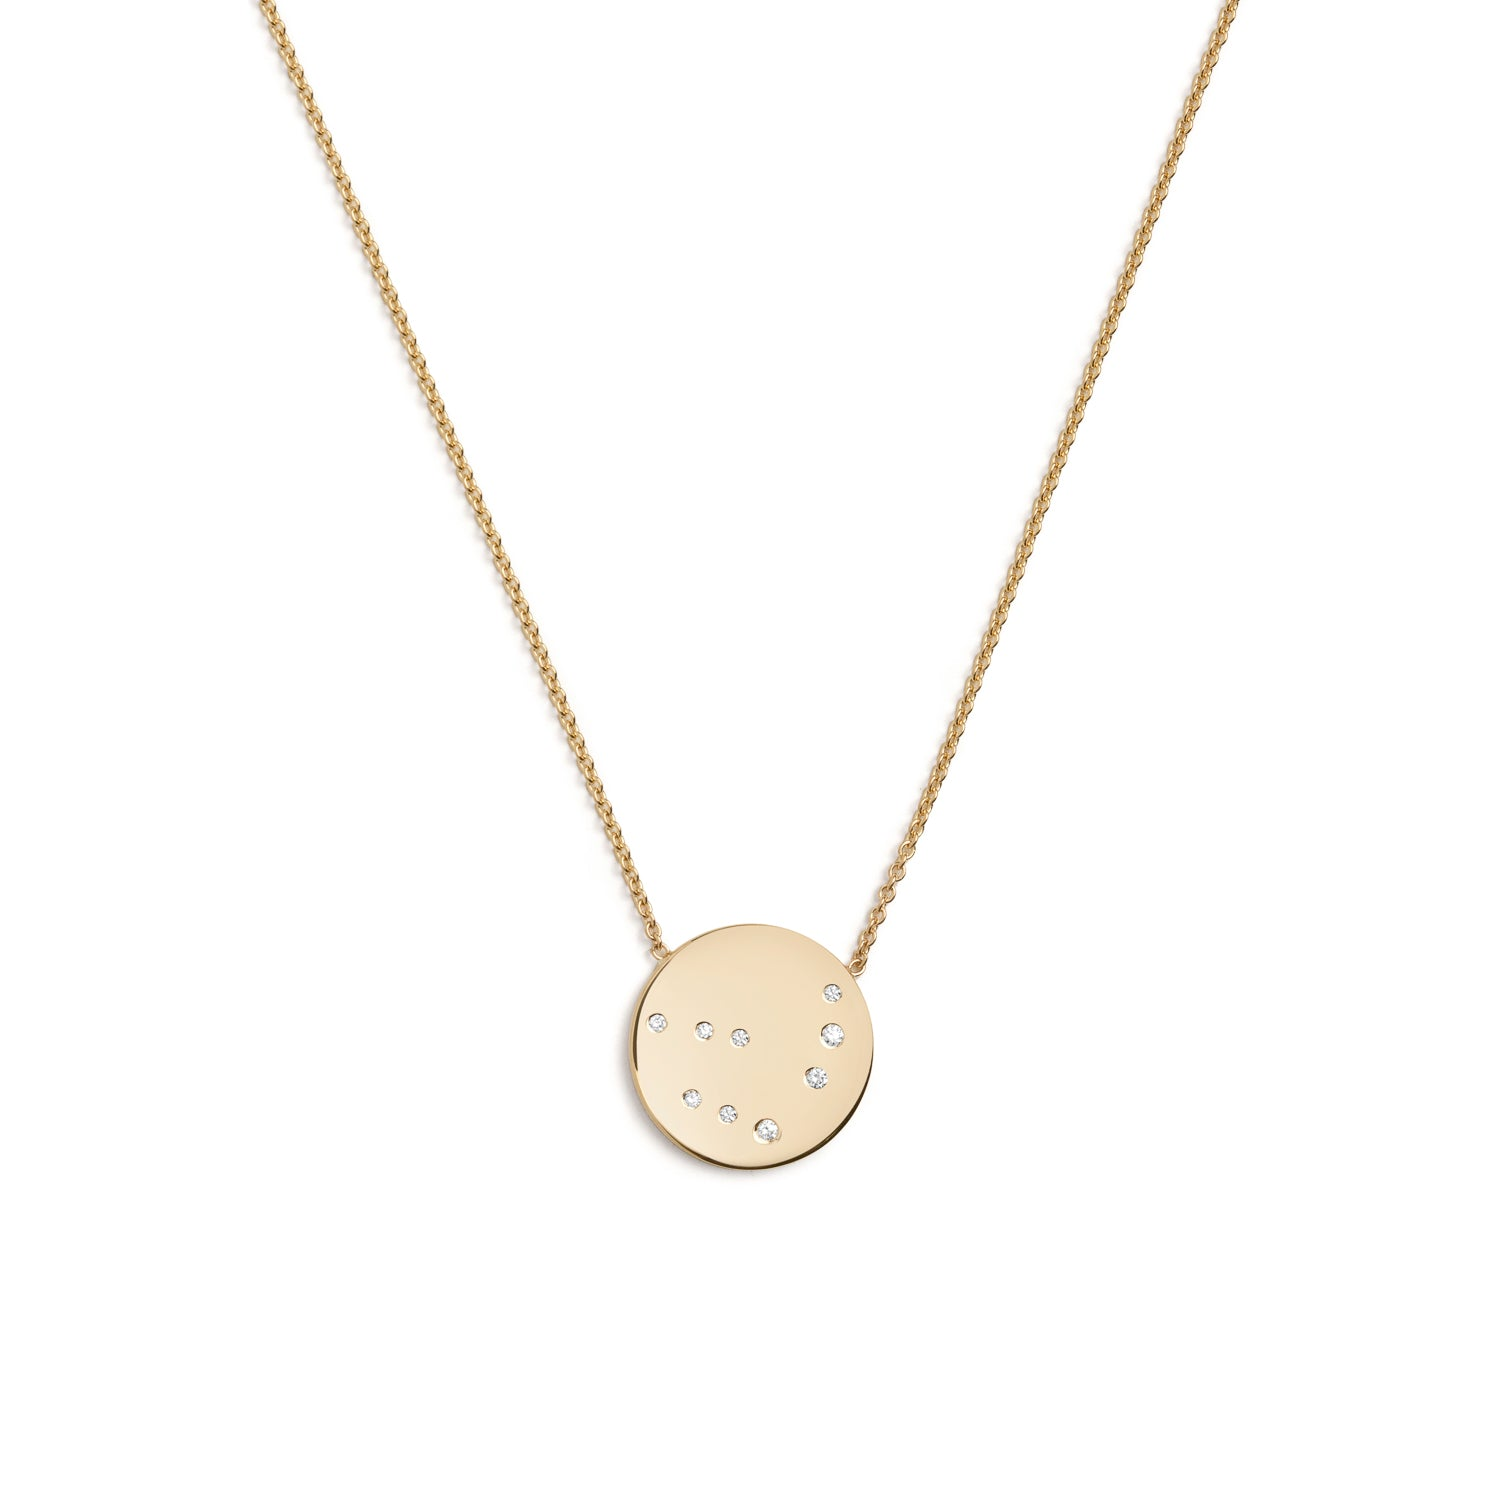 Capricorn Star Sign Necklace in Gold